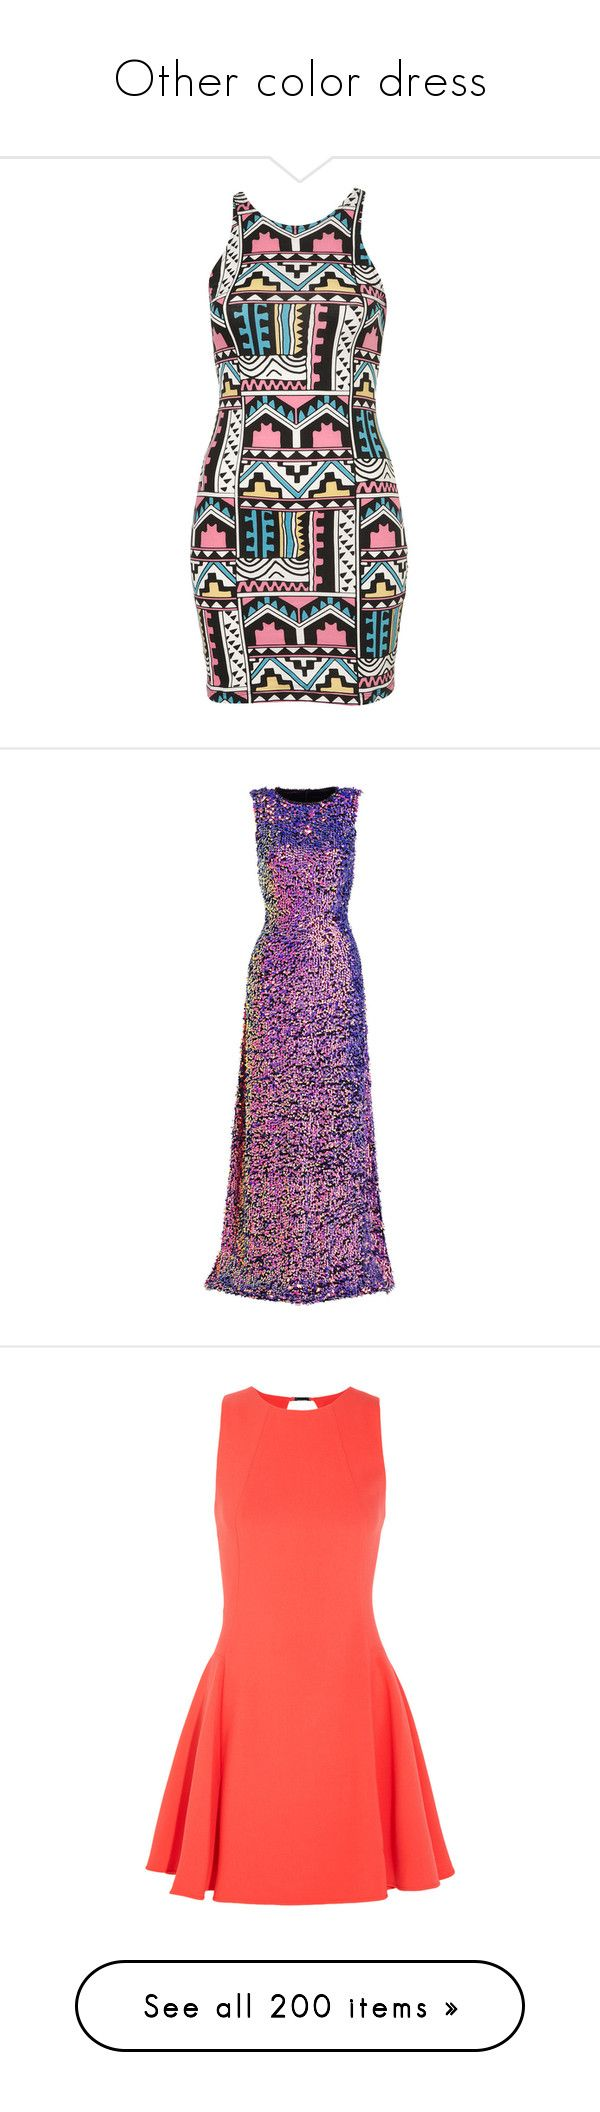 """""""Other color dress"""" by casey-avery ❤ liked on Polyvore featuring dresses, vestidos, multi, aztec pattern dress, aztec bodycon dress, bodycon dress, aztec print bodycon dress, aztec print dress, gowns and beaded evening gowns"""